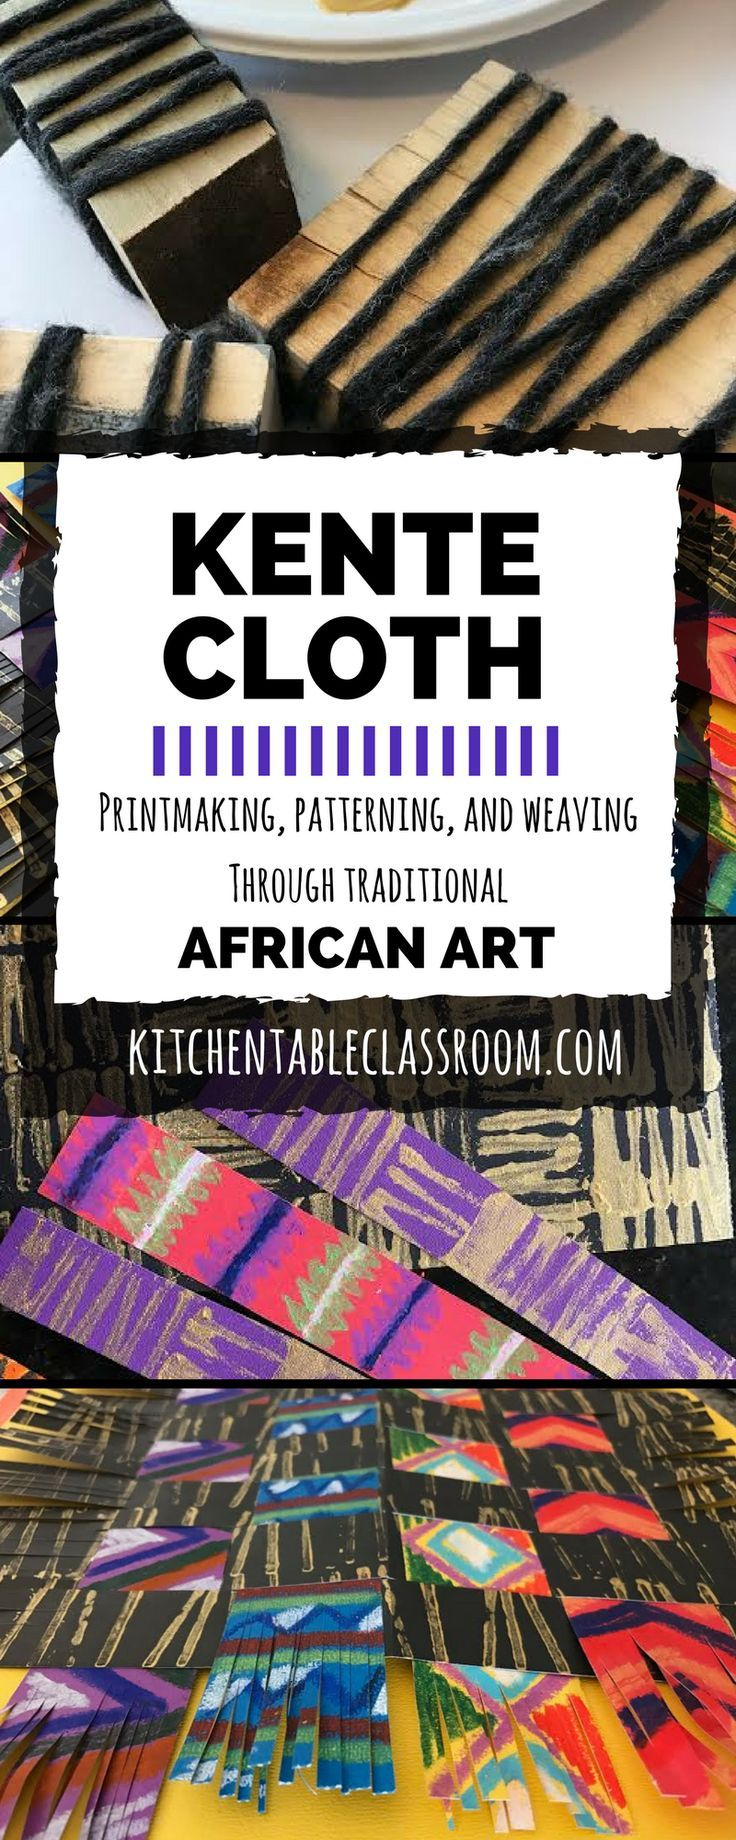 Kente Cloth African Print | Art History Lessons | Explore the symbolism of African colors and art techniques with this inspiring art project.